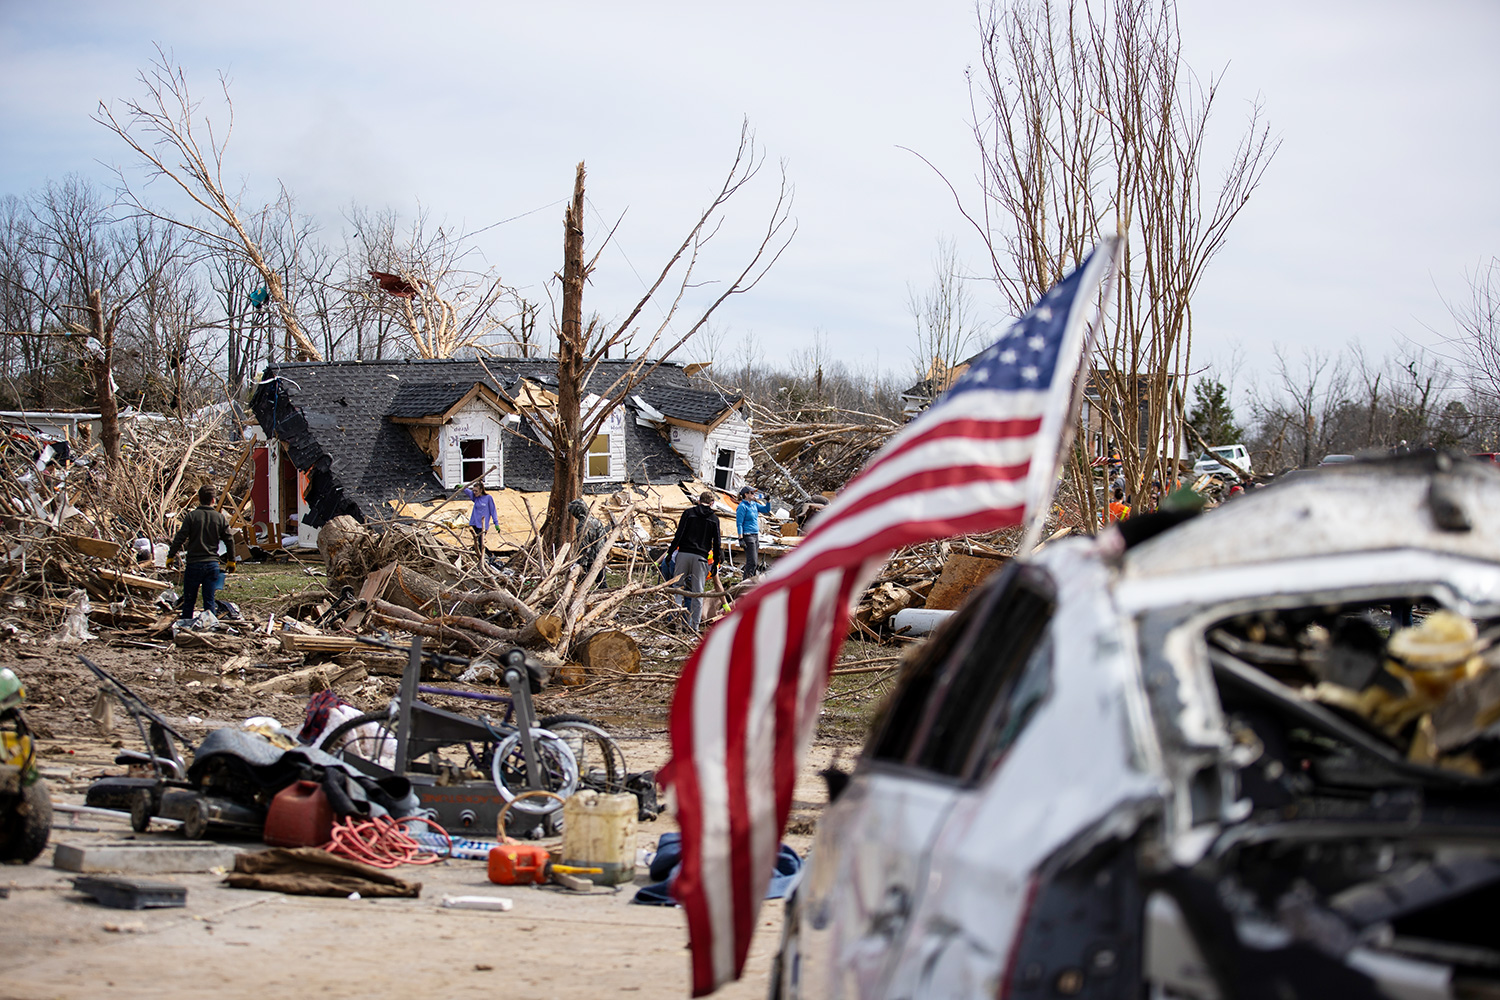 Volunteers work to clean up tornado-damaged areas on March 4, 2020 in Cookeville, Tennessee